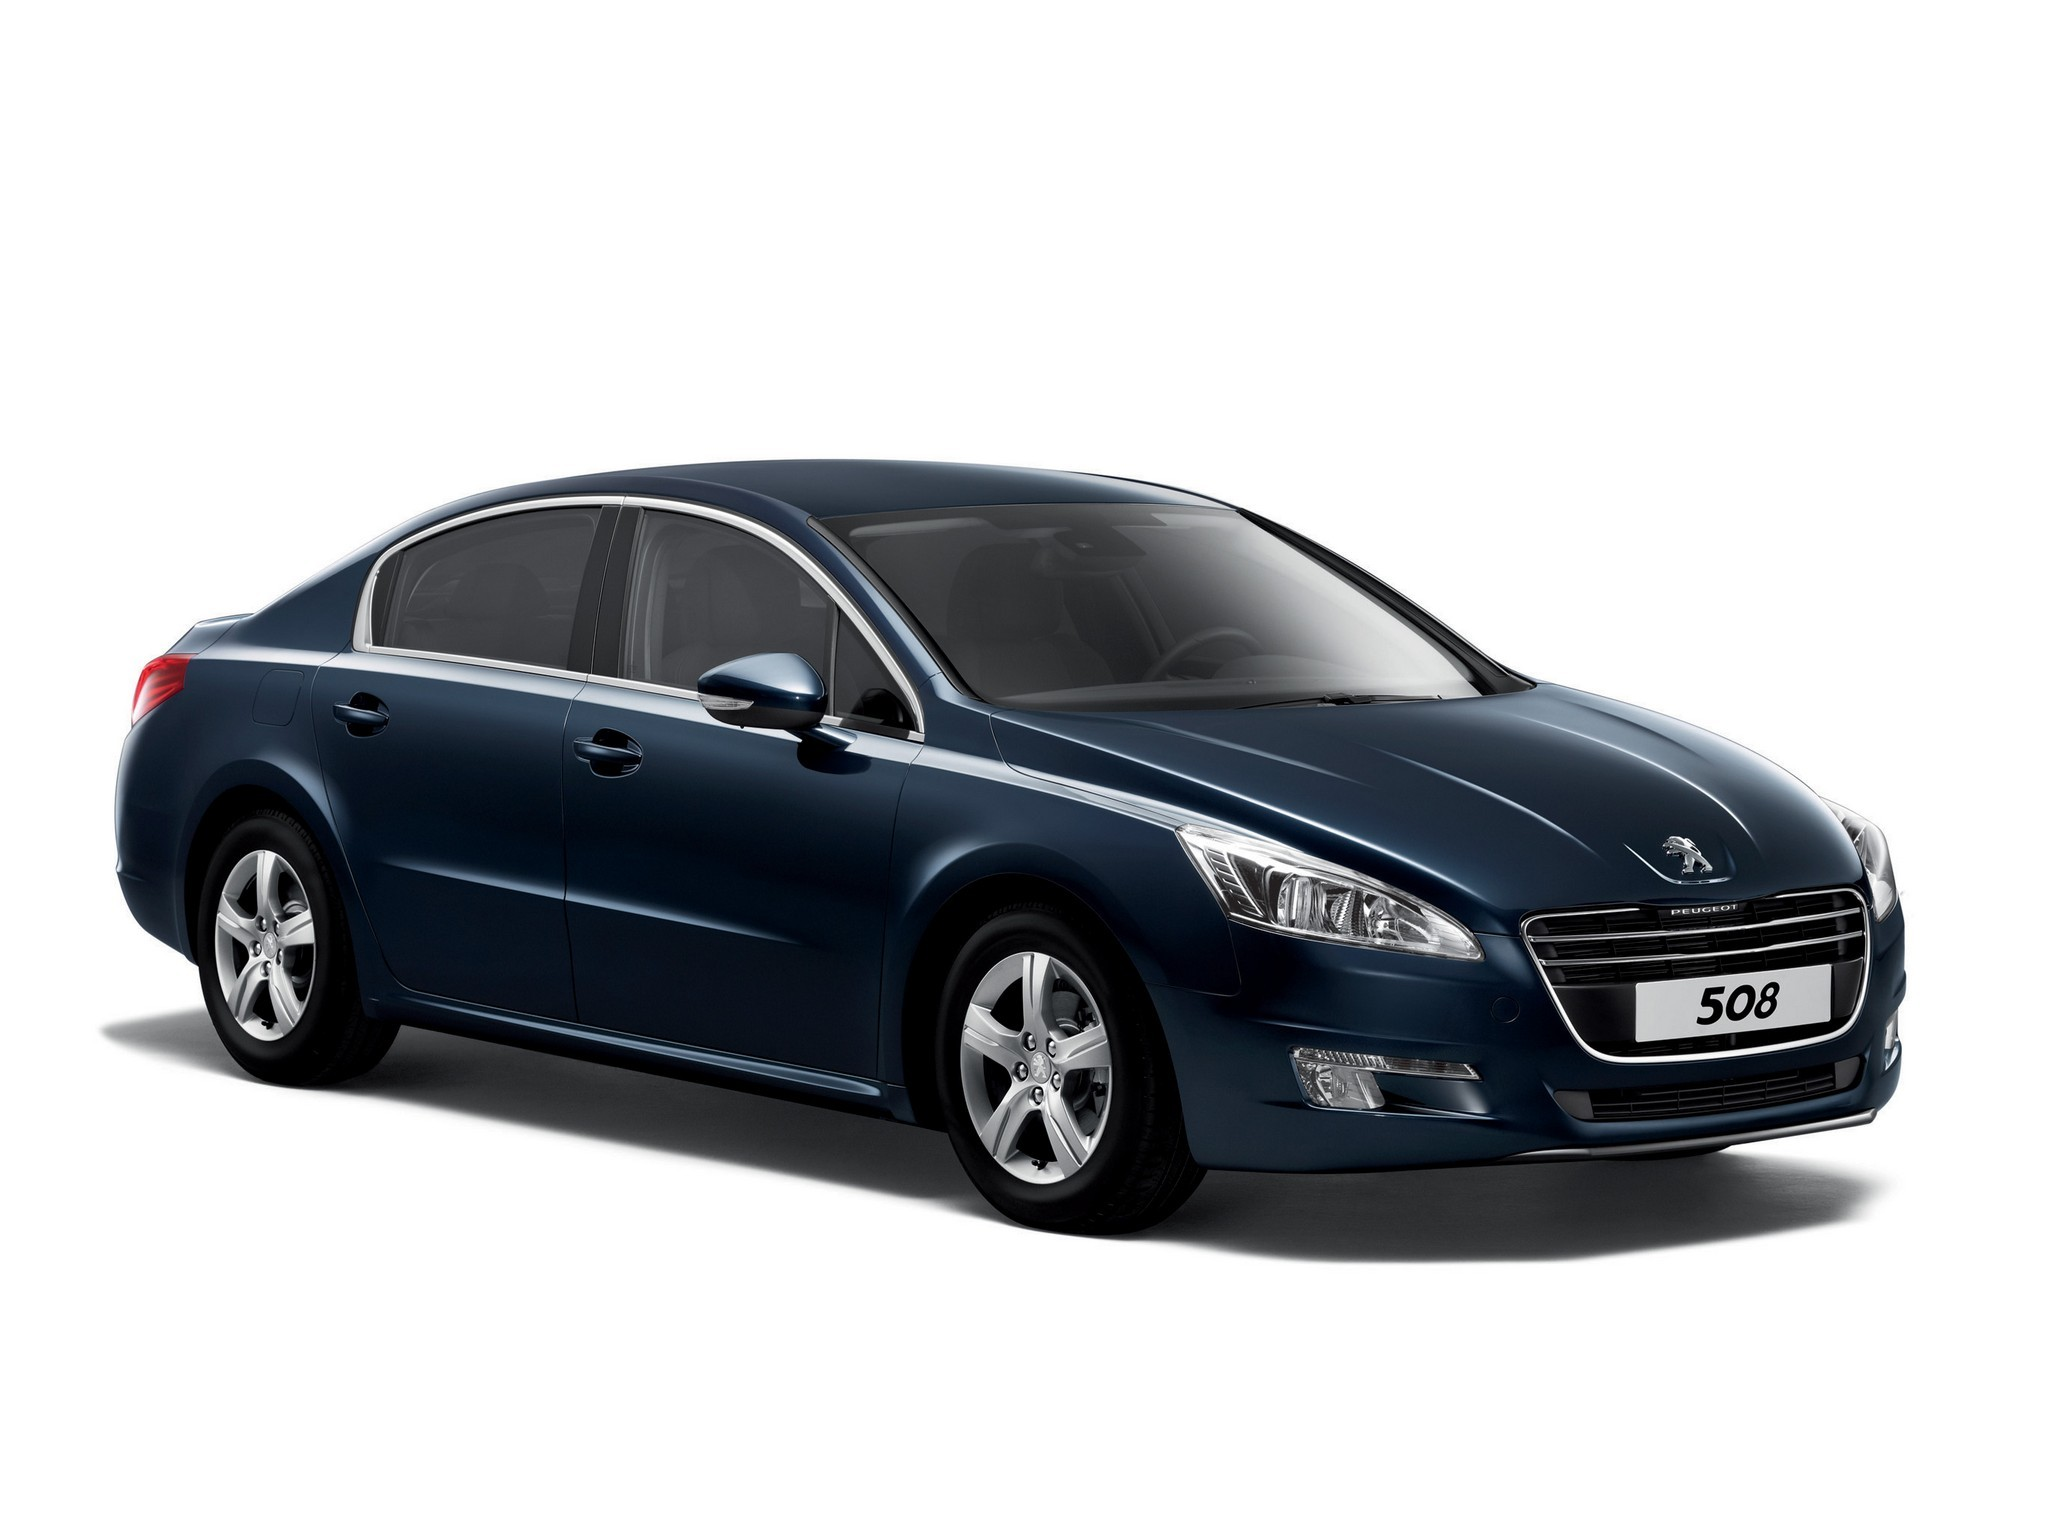 peugeot 508 berline specs 2010 2011 2012 2013 2014 autoevolution. Black Bedroom Furniture Sets. Home Design Ideas